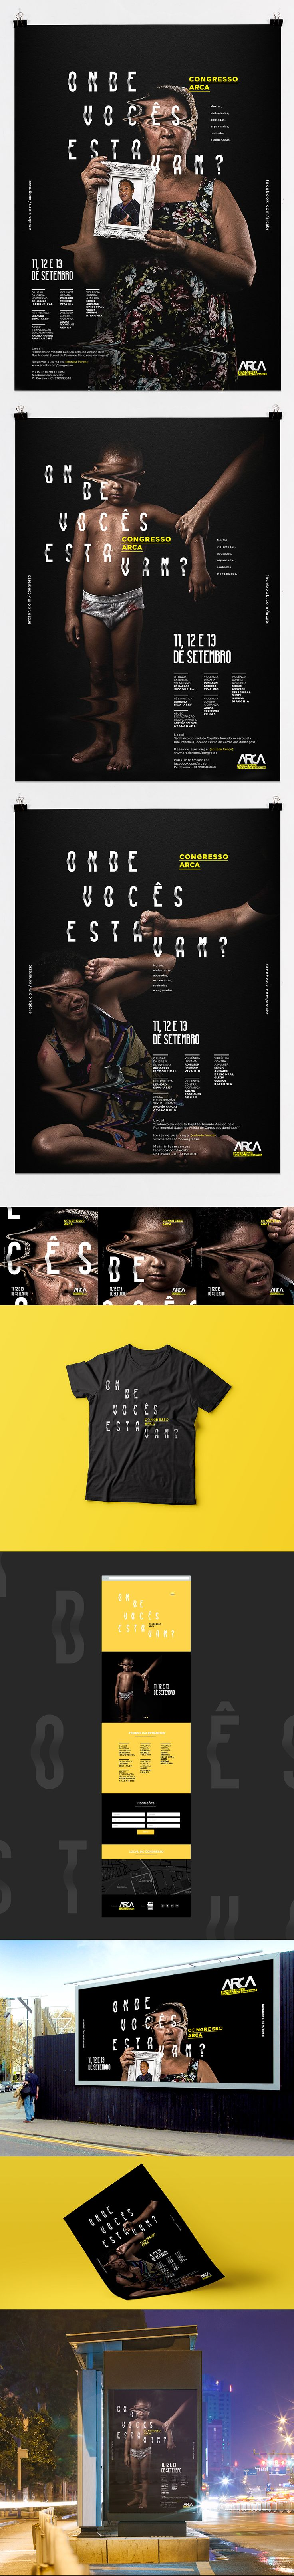 32 Best Advert Images On Pinterest Social Media Advertising And X8 Kendrick T Shirt Size M Congresso Arca Behance